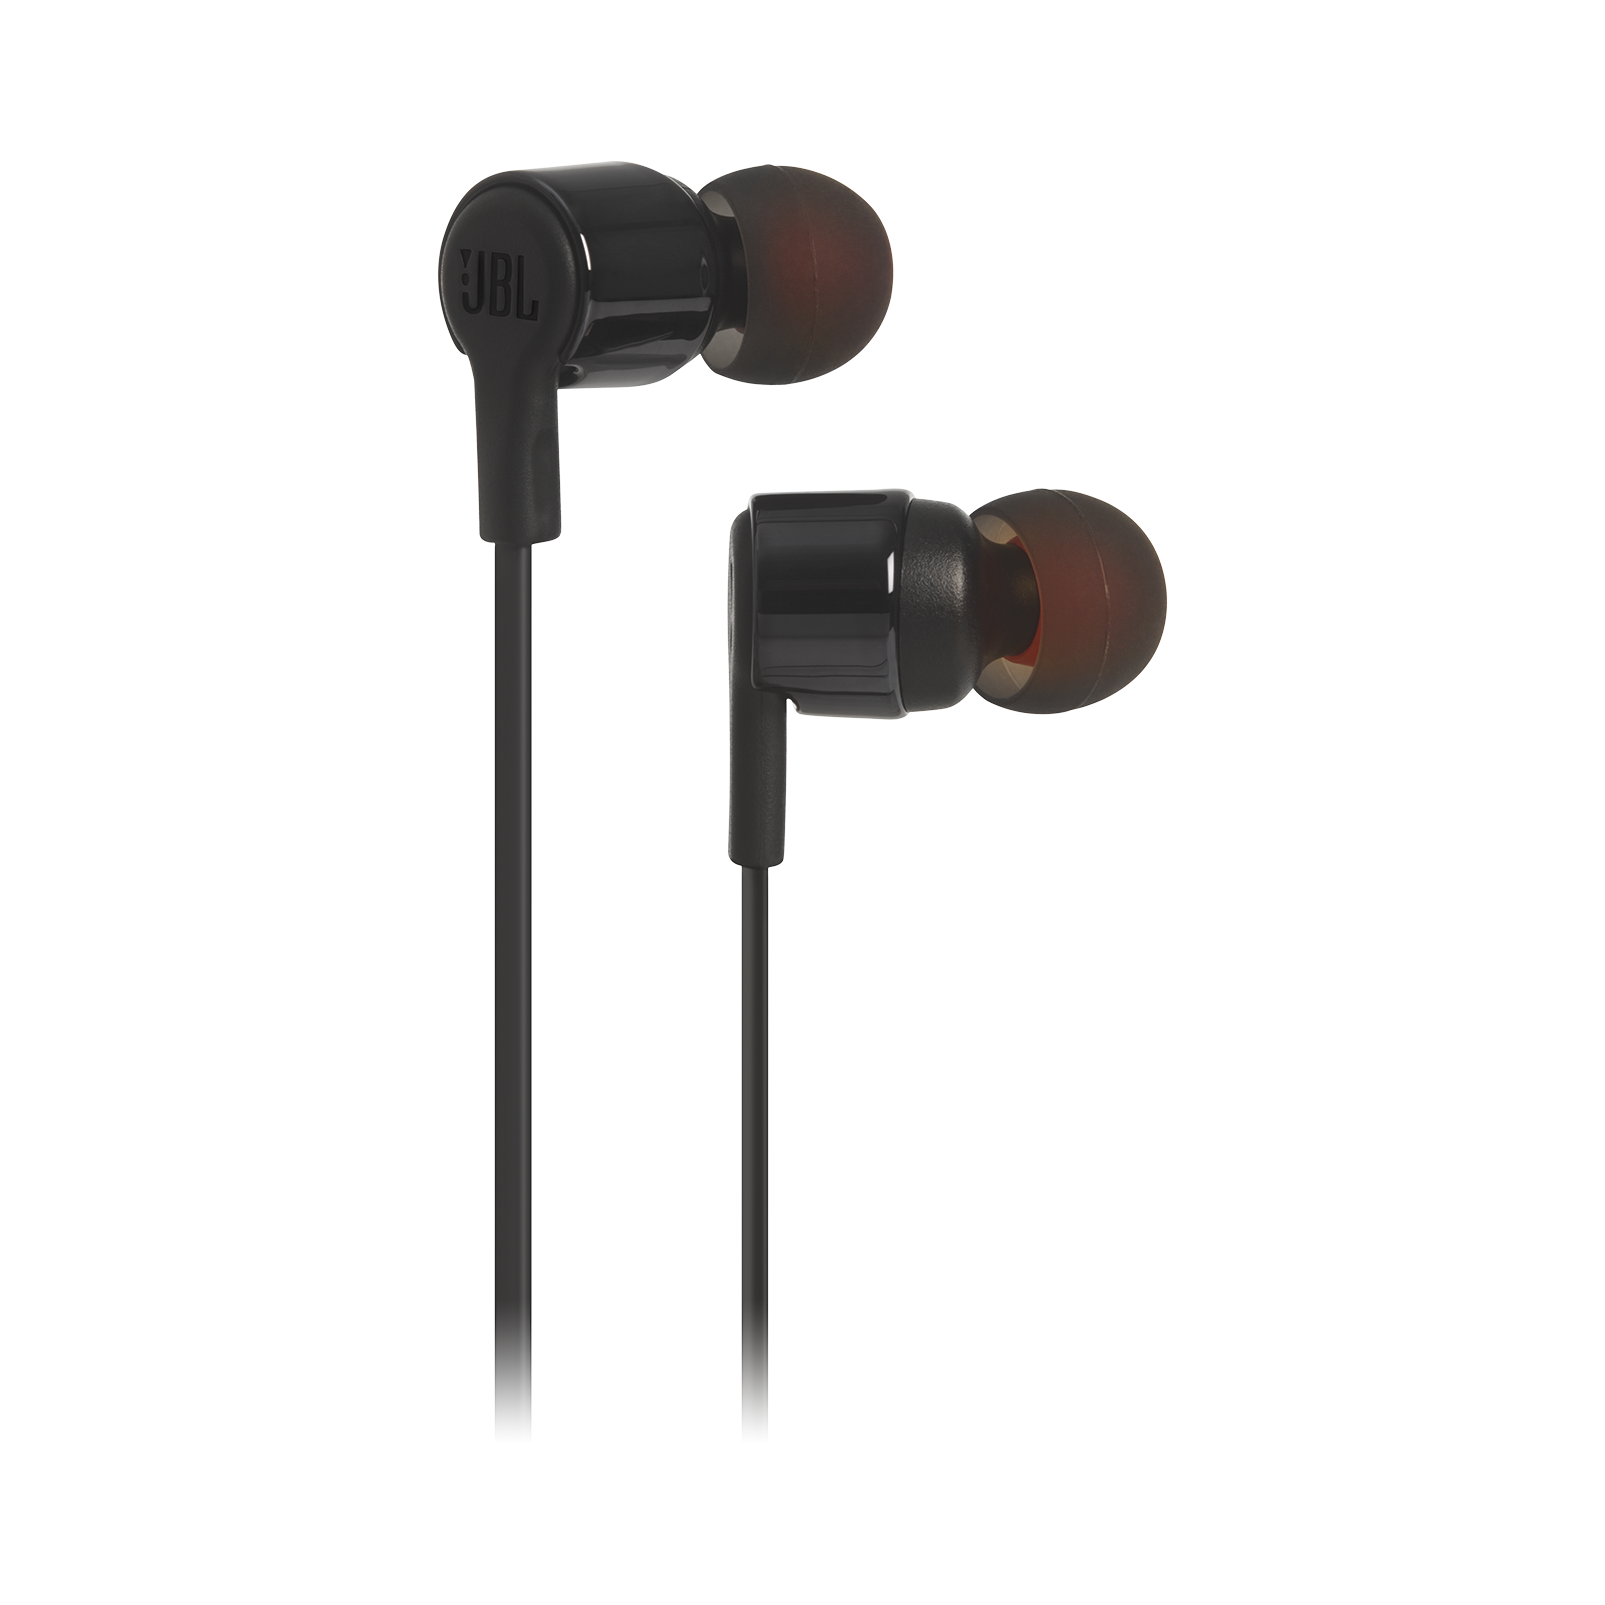 JBL TUNE 210 - Black - In-ear headphones - Hero